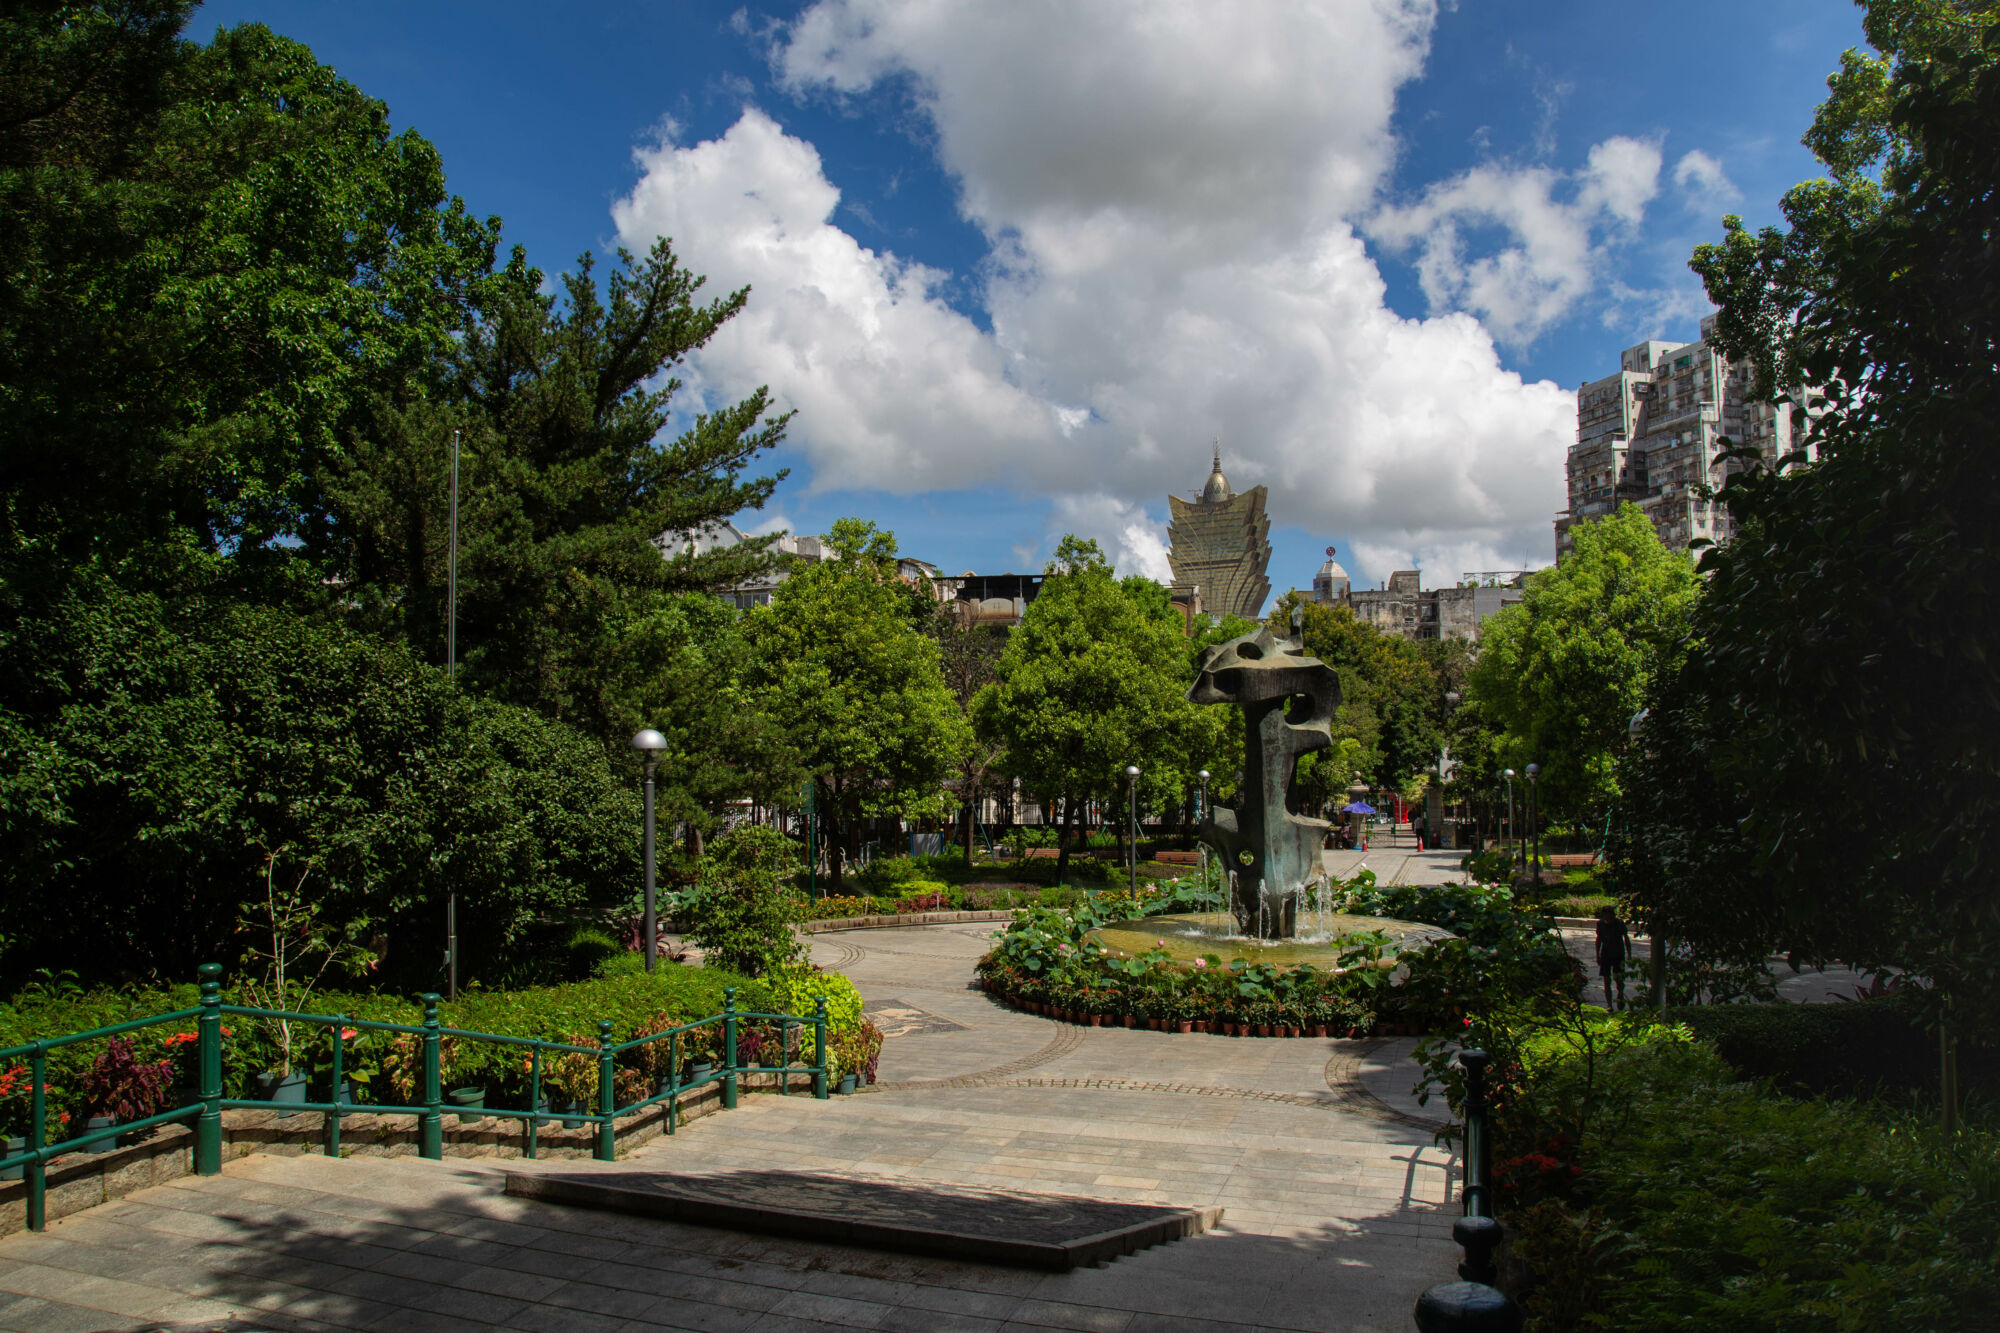 Wide shot showing the front garden and back of a statue at Camoes Garden